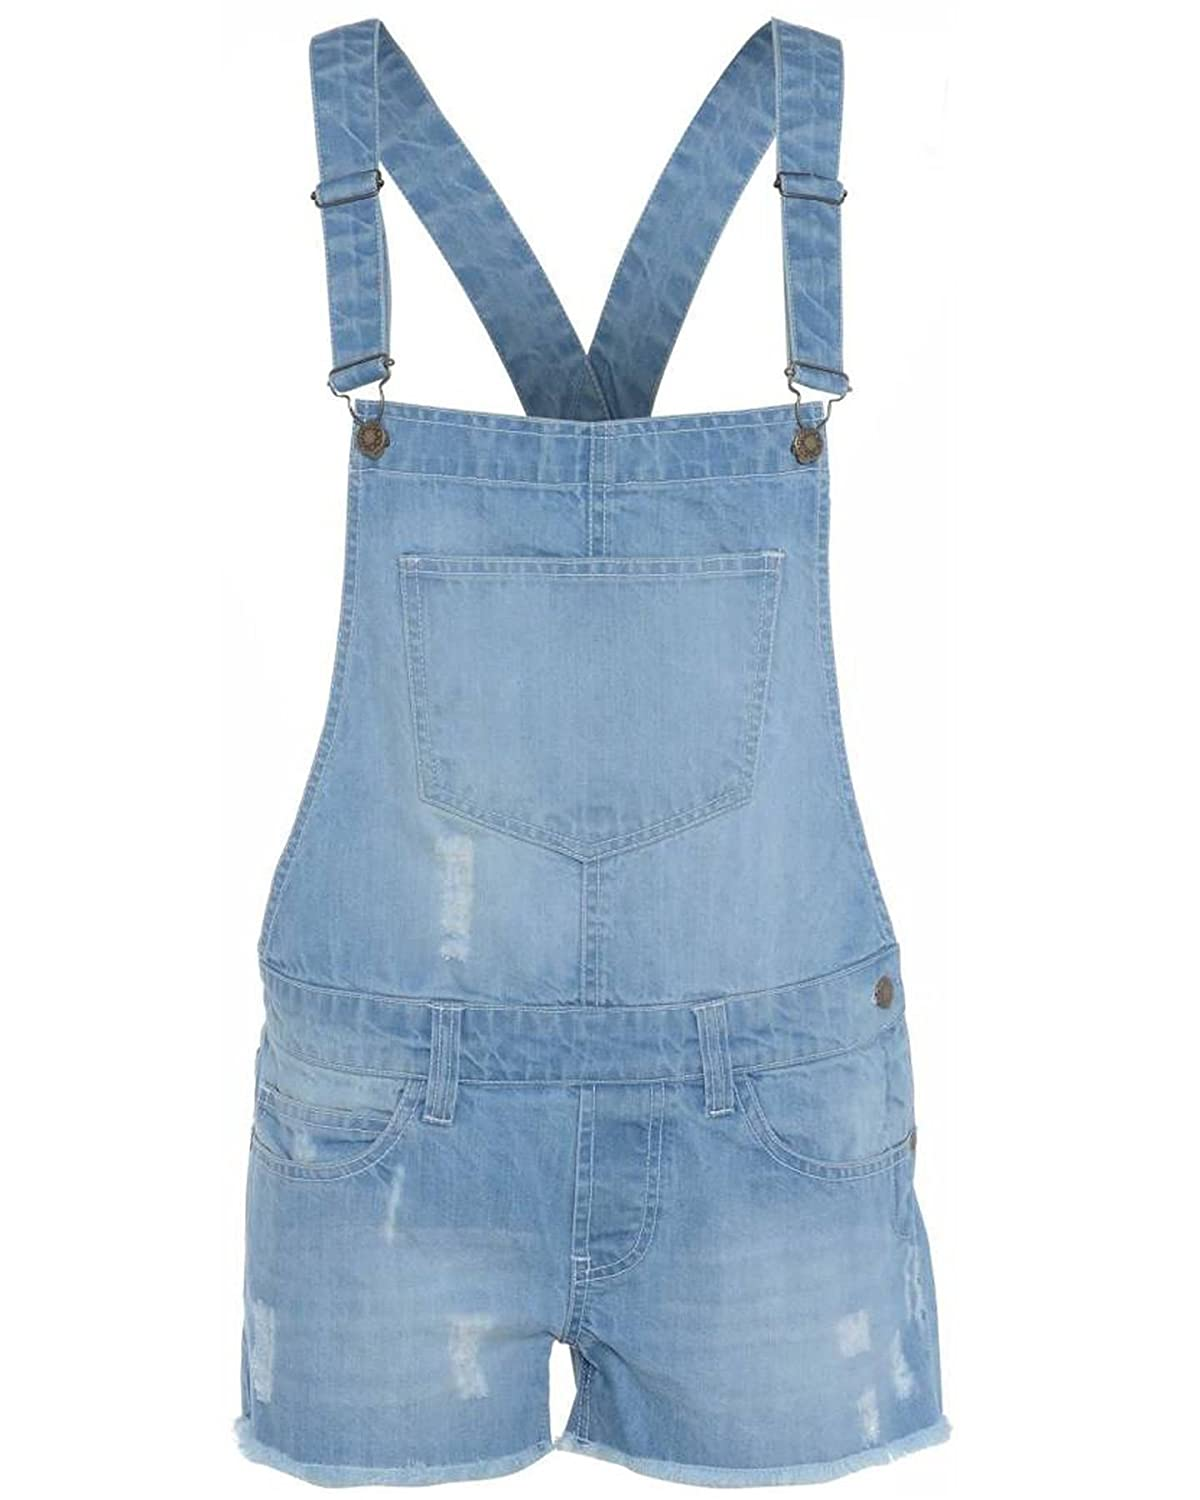 NEW KIDS GIRLS DENIM STRETCH LIGHT WASH PLAYSUIT JUMPSUIT DUNGAREE SHORTS